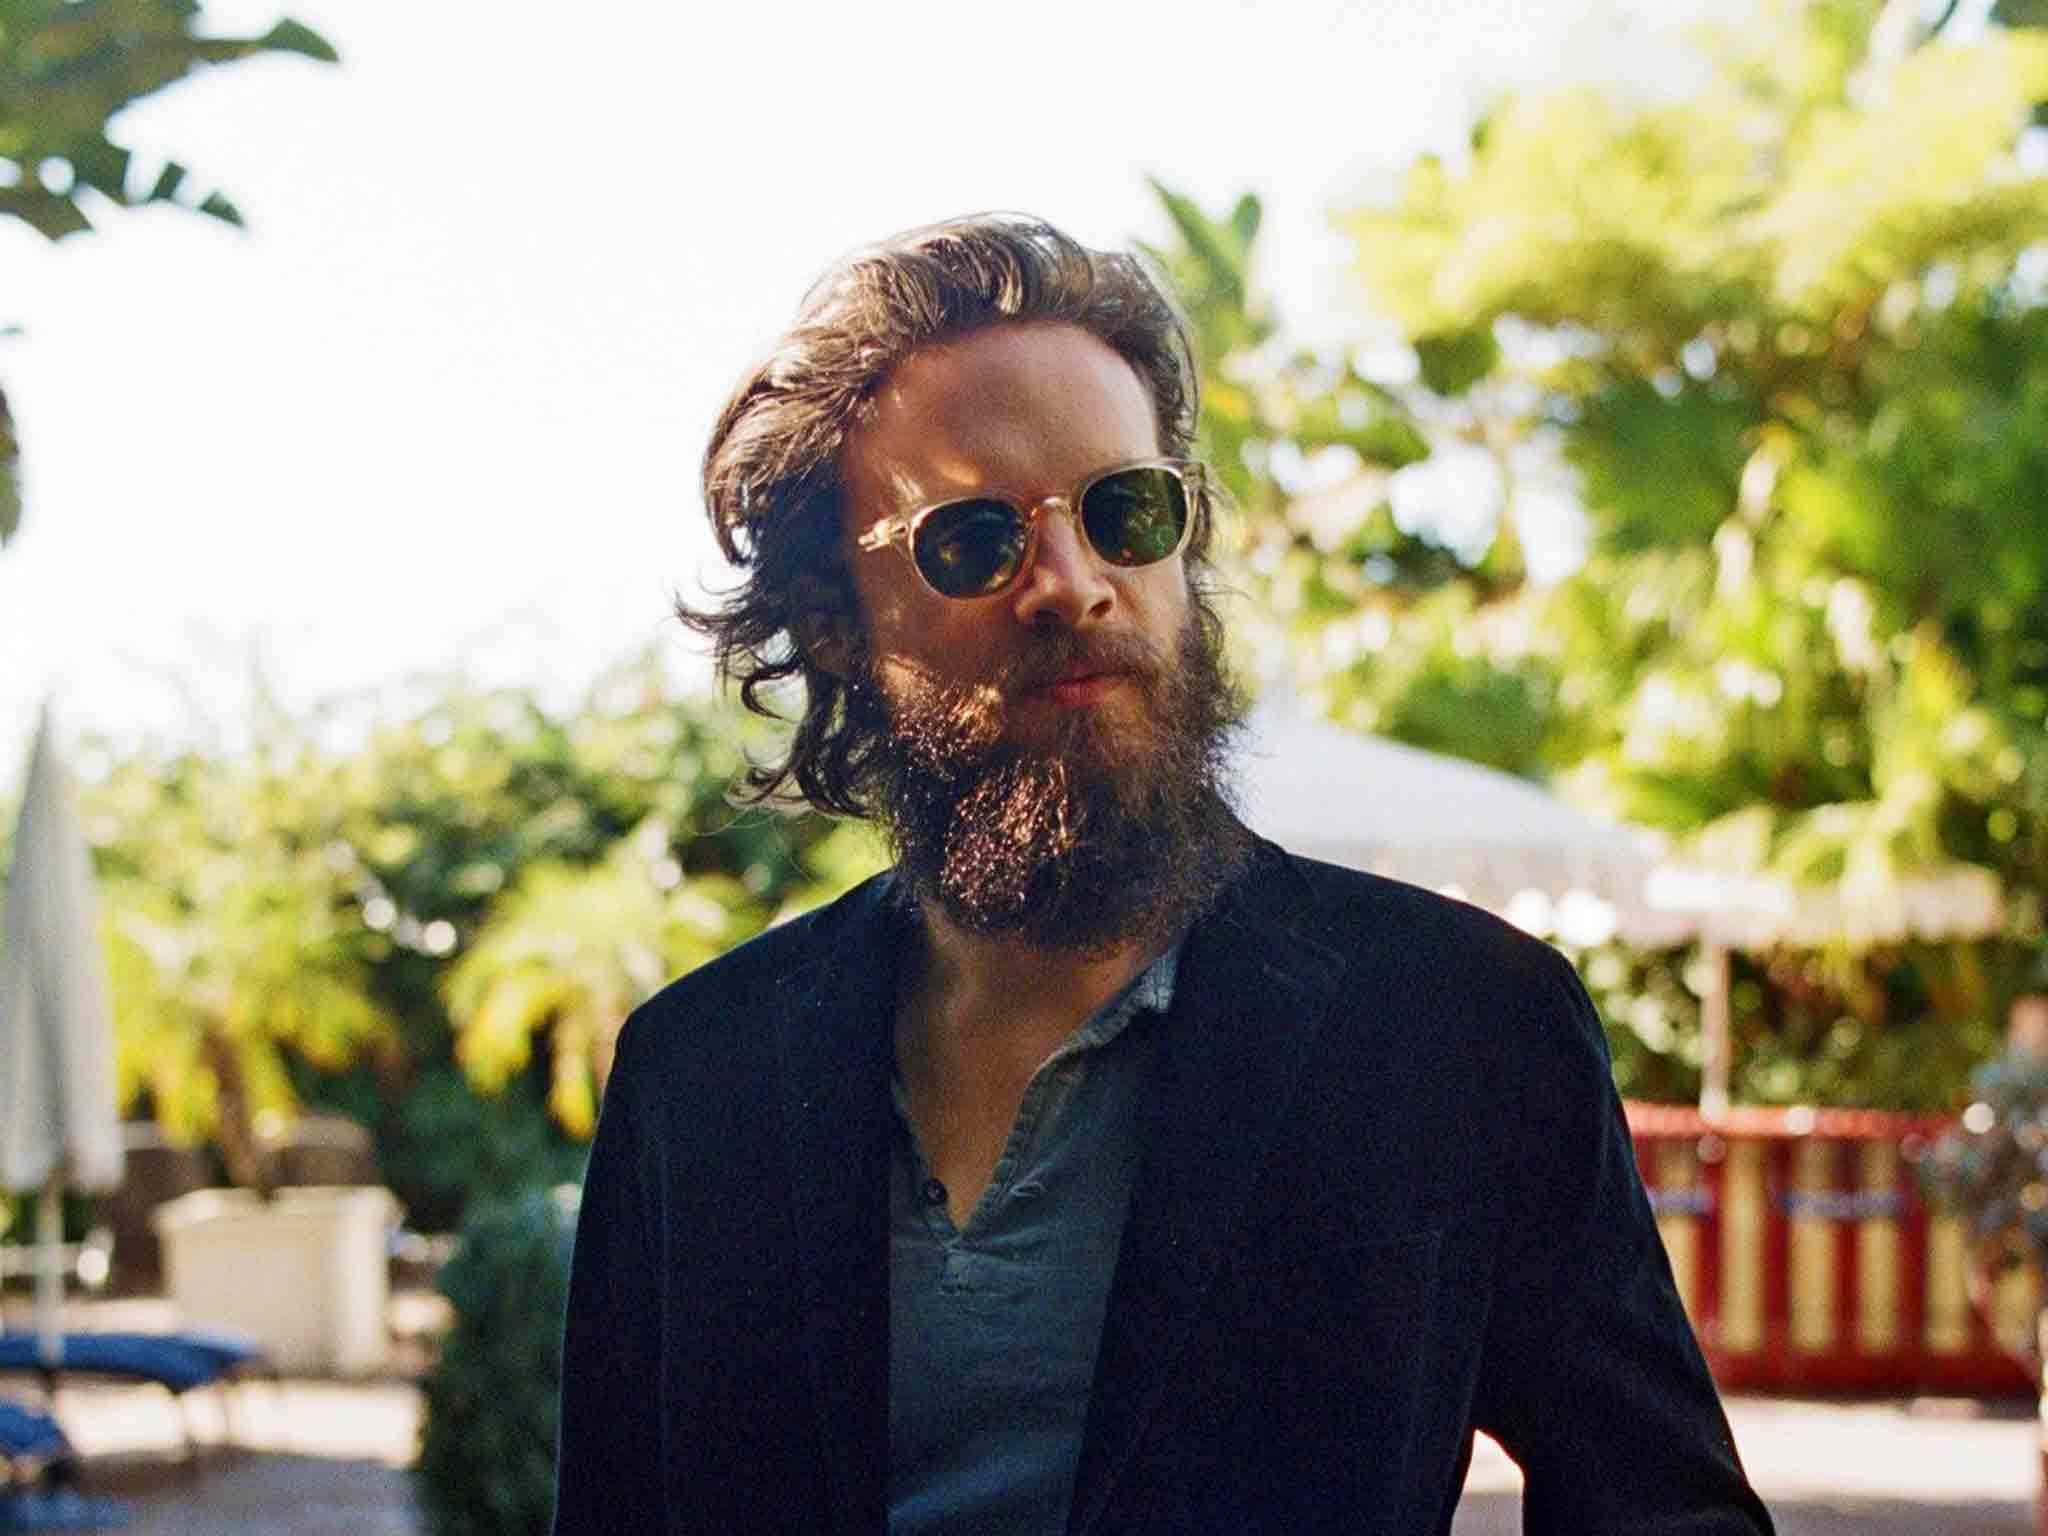 The 50 best albums of 2015 - Father John Misty - 'I Love You, Honeybear'